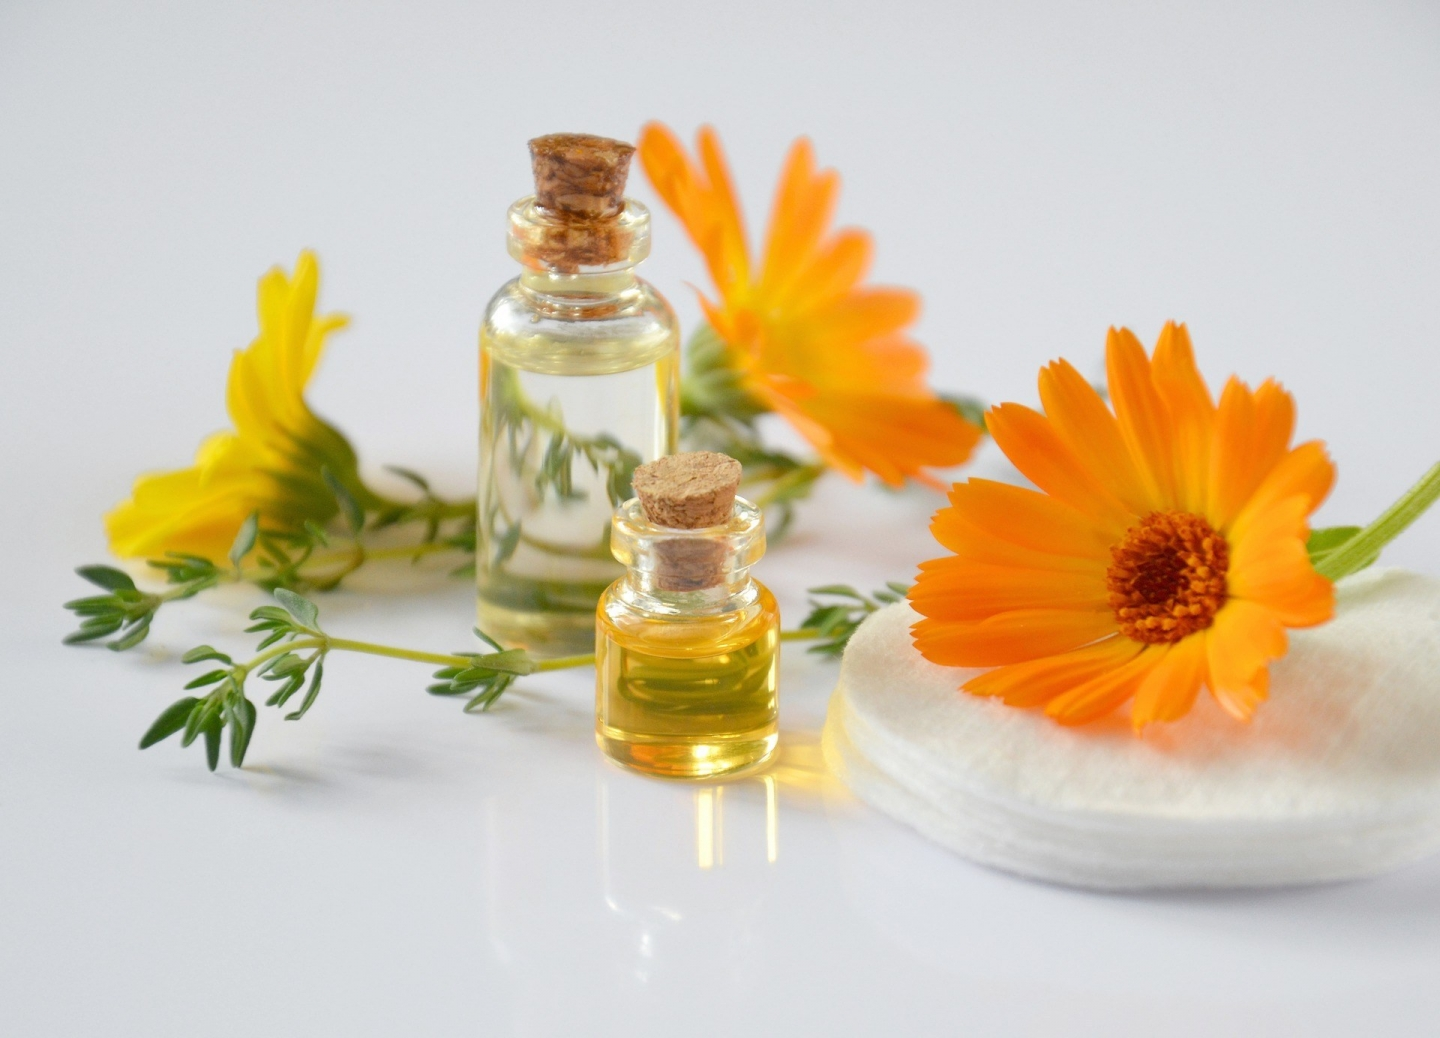 Gentle Eczema Healing with Calendula